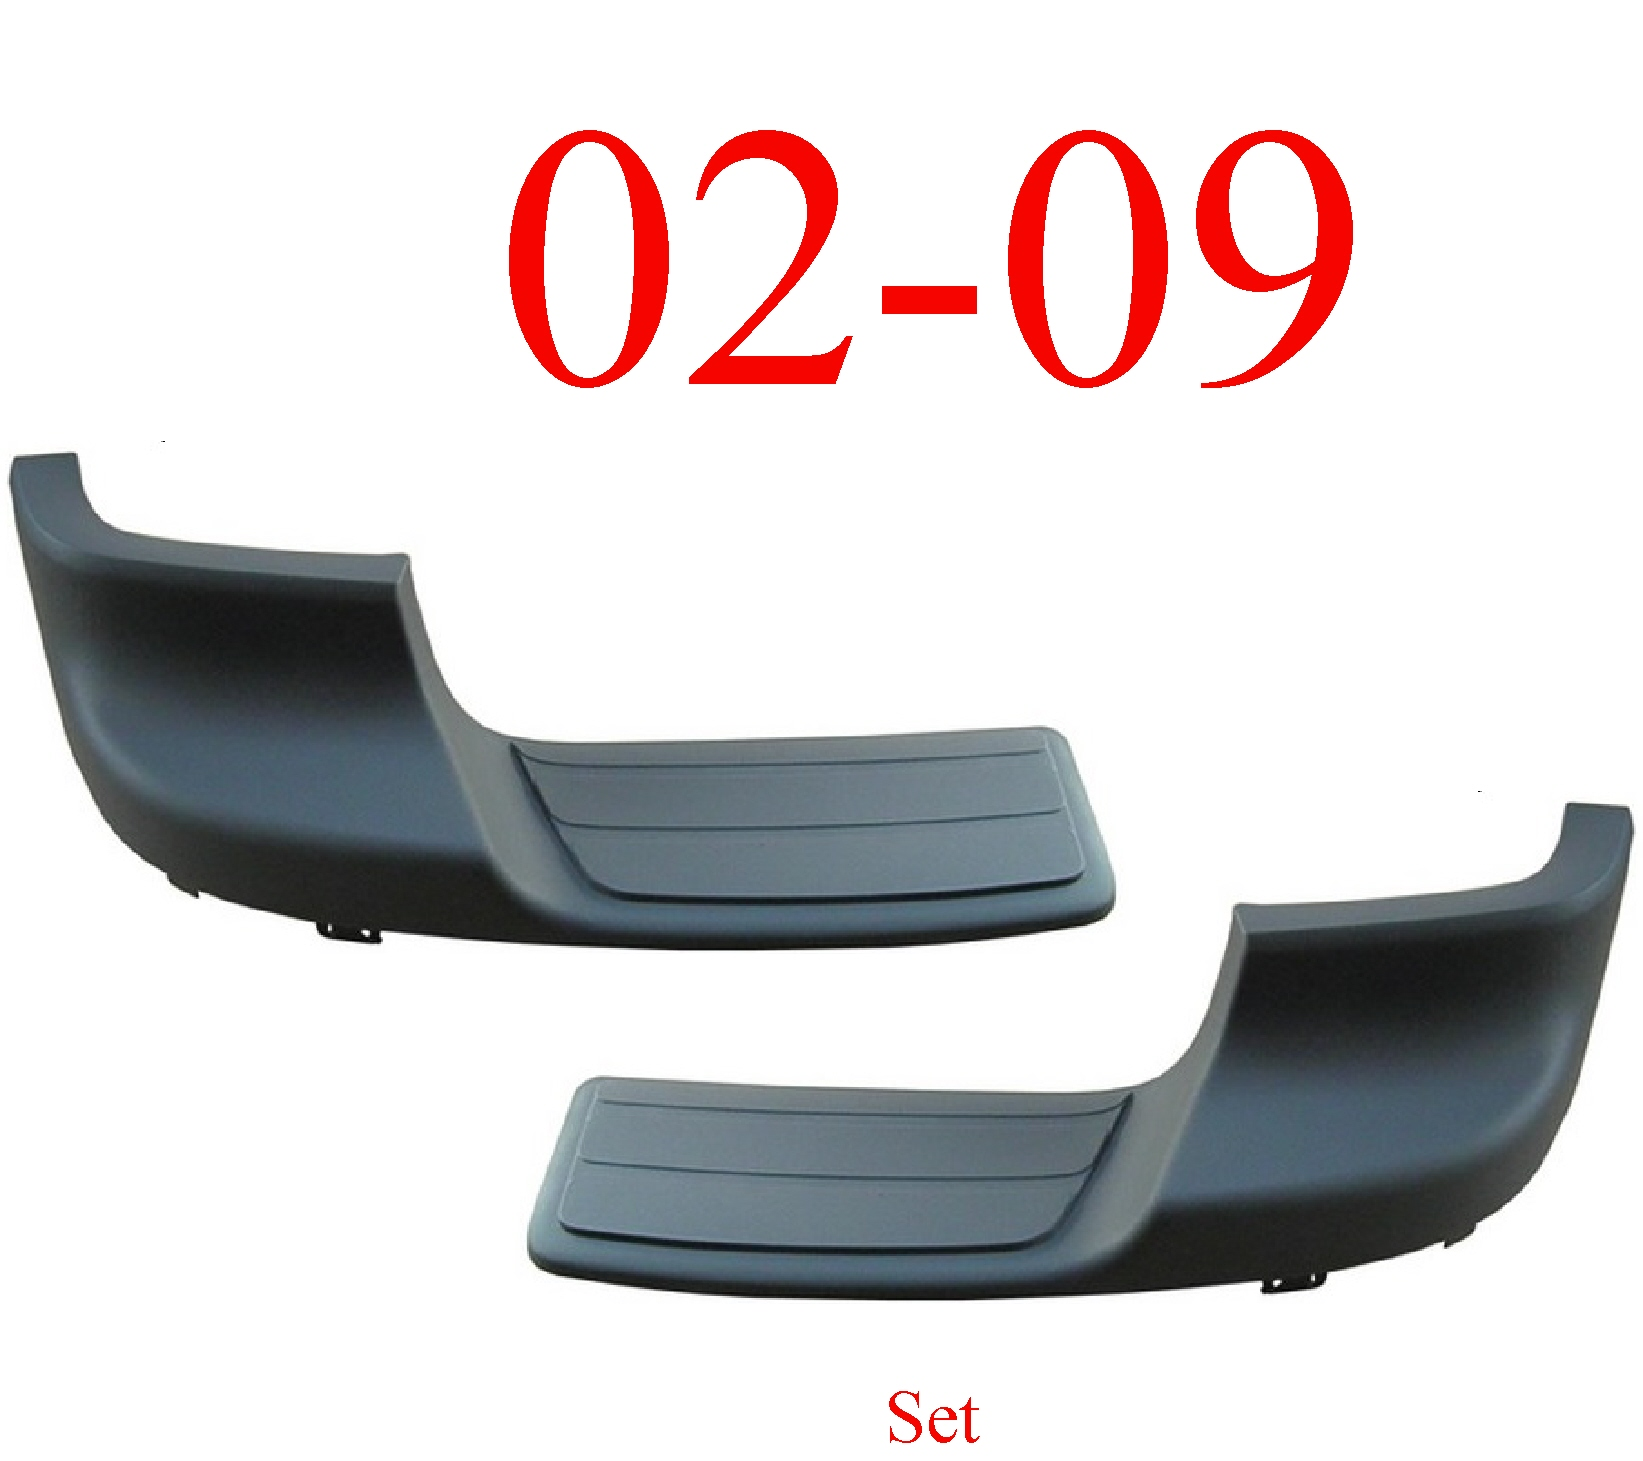 02-09 Chevy Trailblazer Rear Outer Step Pad Set